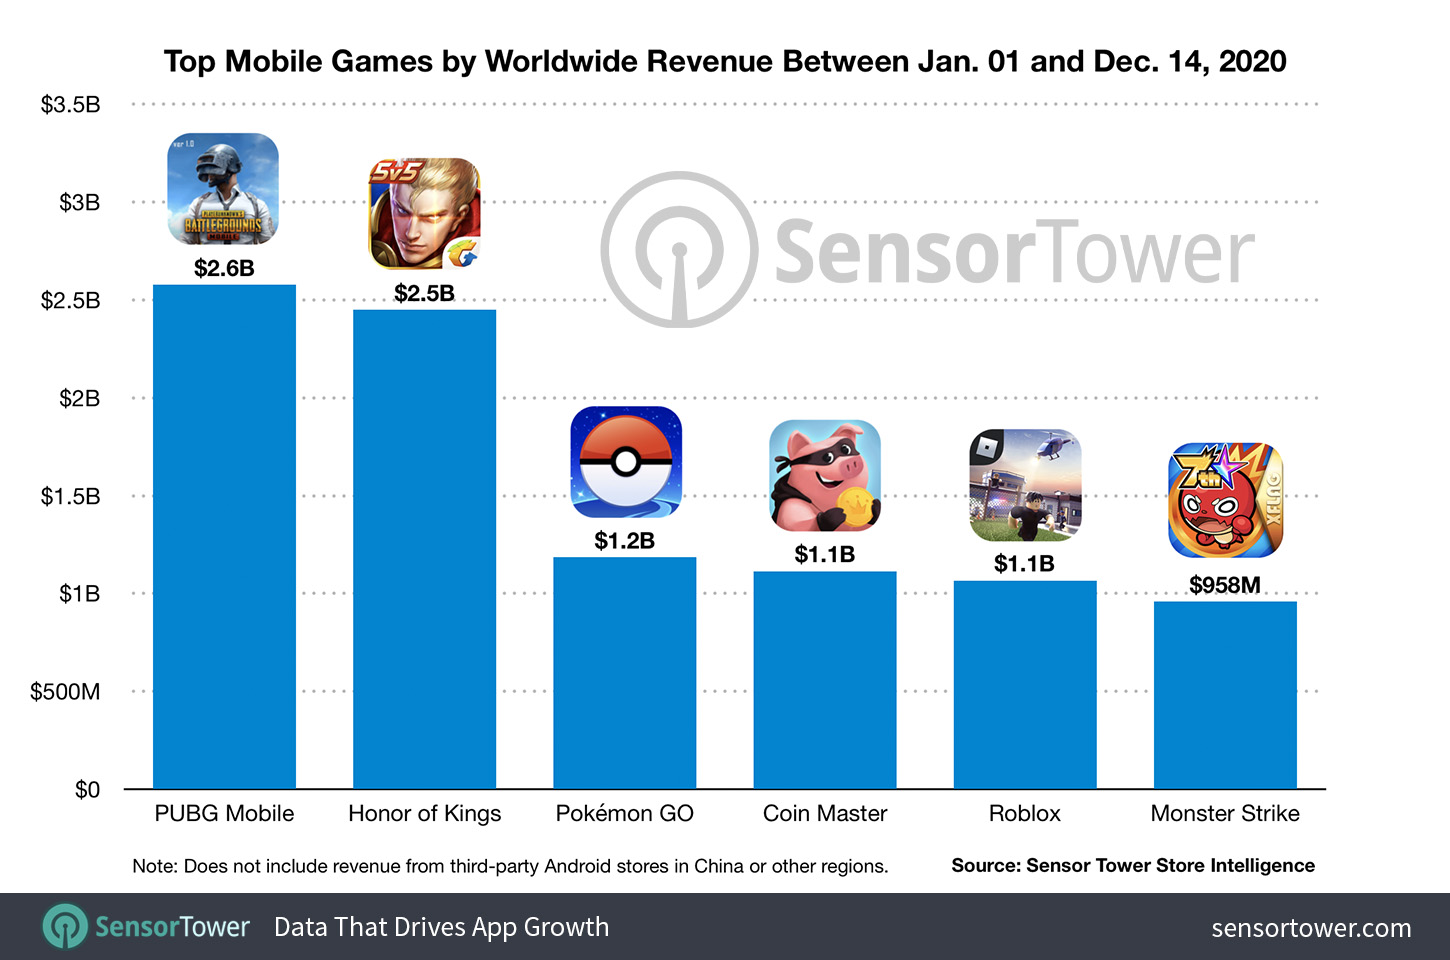 Top Mobile Games By Worldwide Revenue Between January 1 to December 14 2020